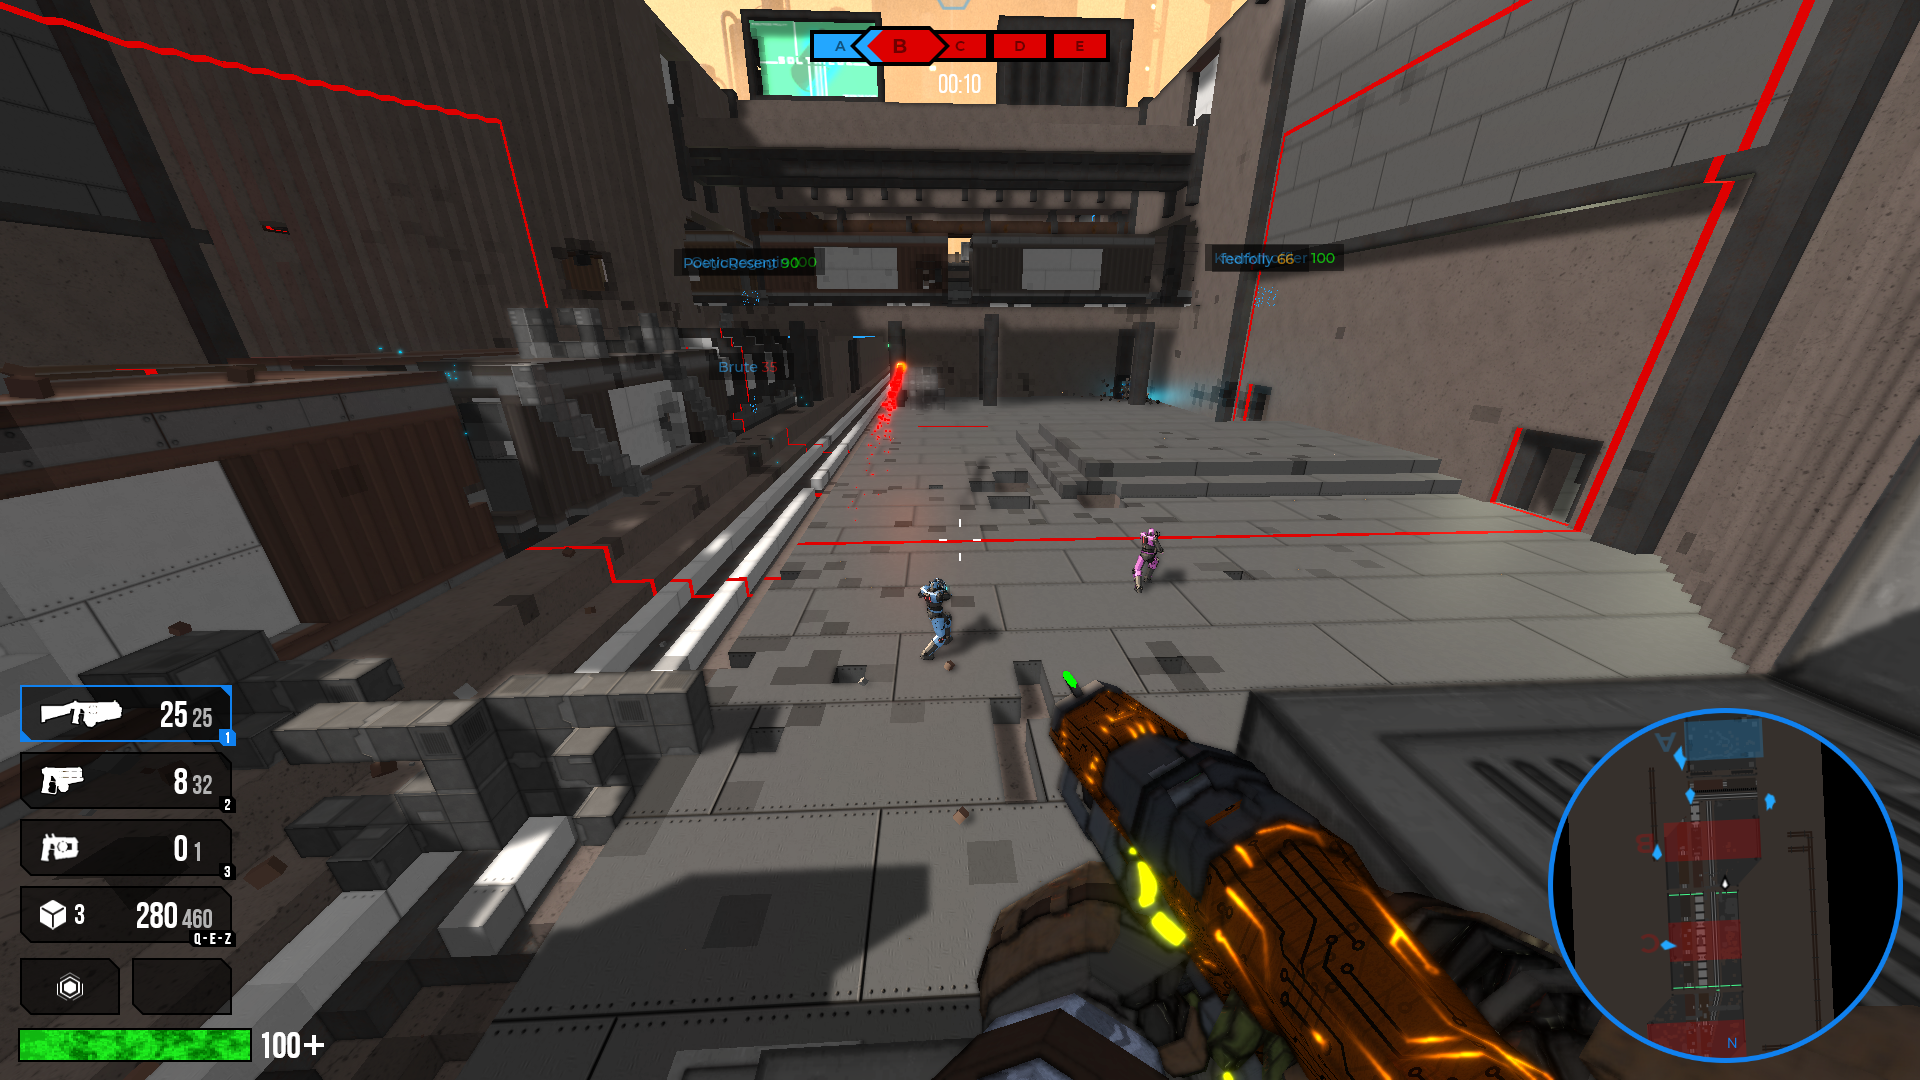 Breakthrough gamemode first-person view